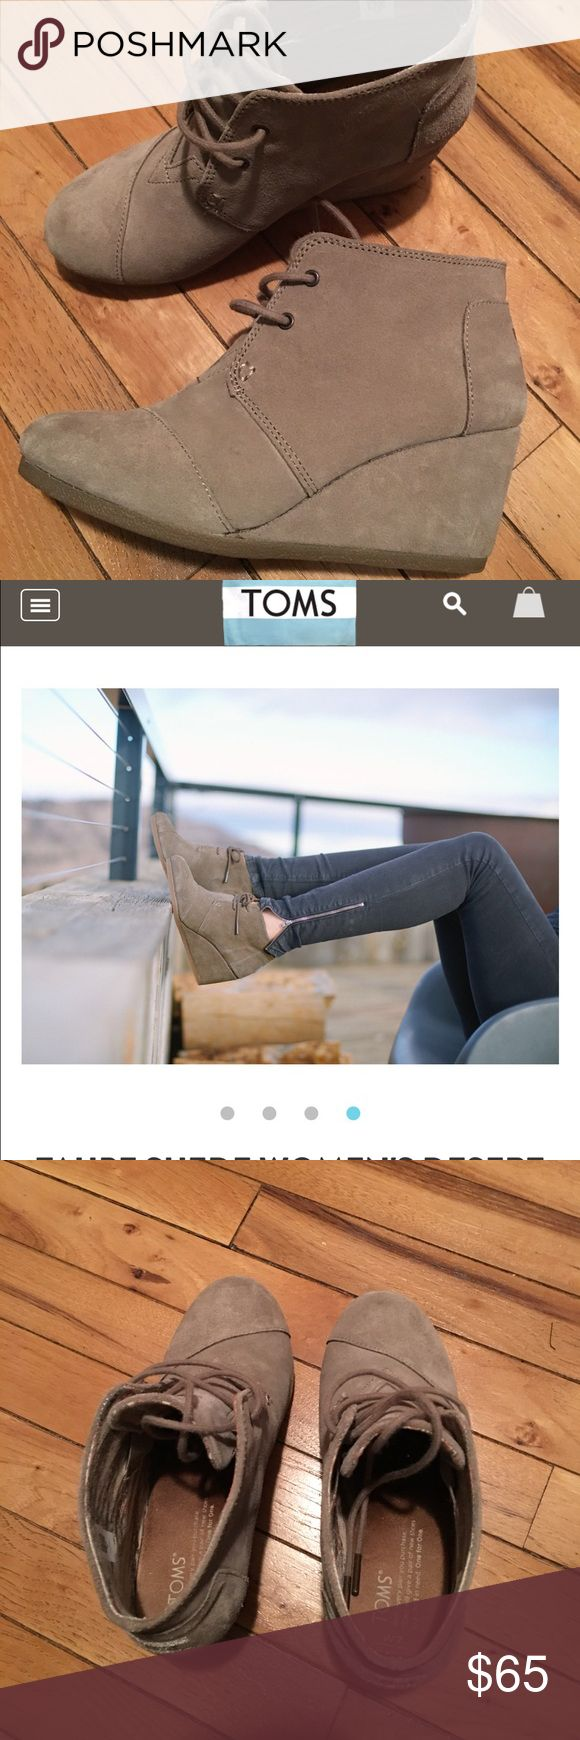 Toms wedge booties, tan Worn once Toms wedge booties TOMS Shoes Wedges